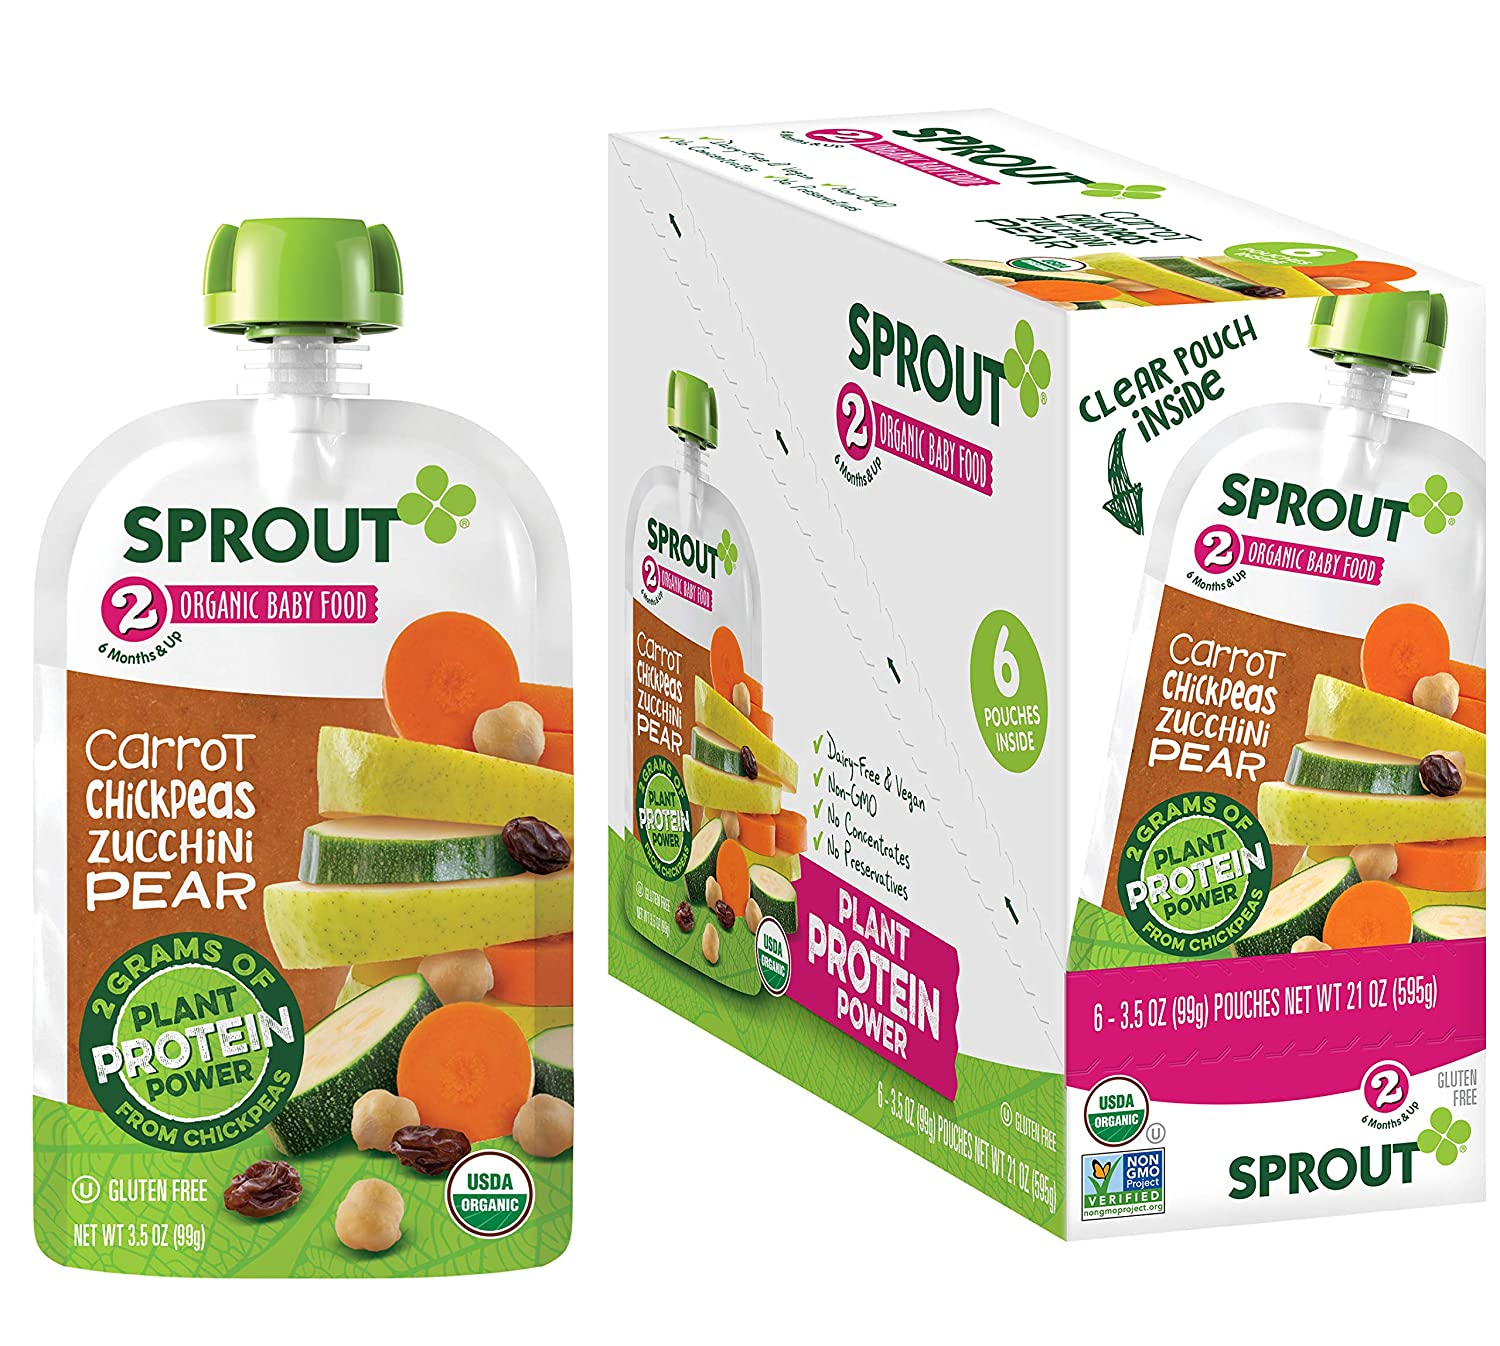 Sprout Organic Stage 2 Baby Food Pouches with Plant Powered Protein, Carrot Chickpeas Zucchini Pear, 3.5 Ounce (Pack of 12)